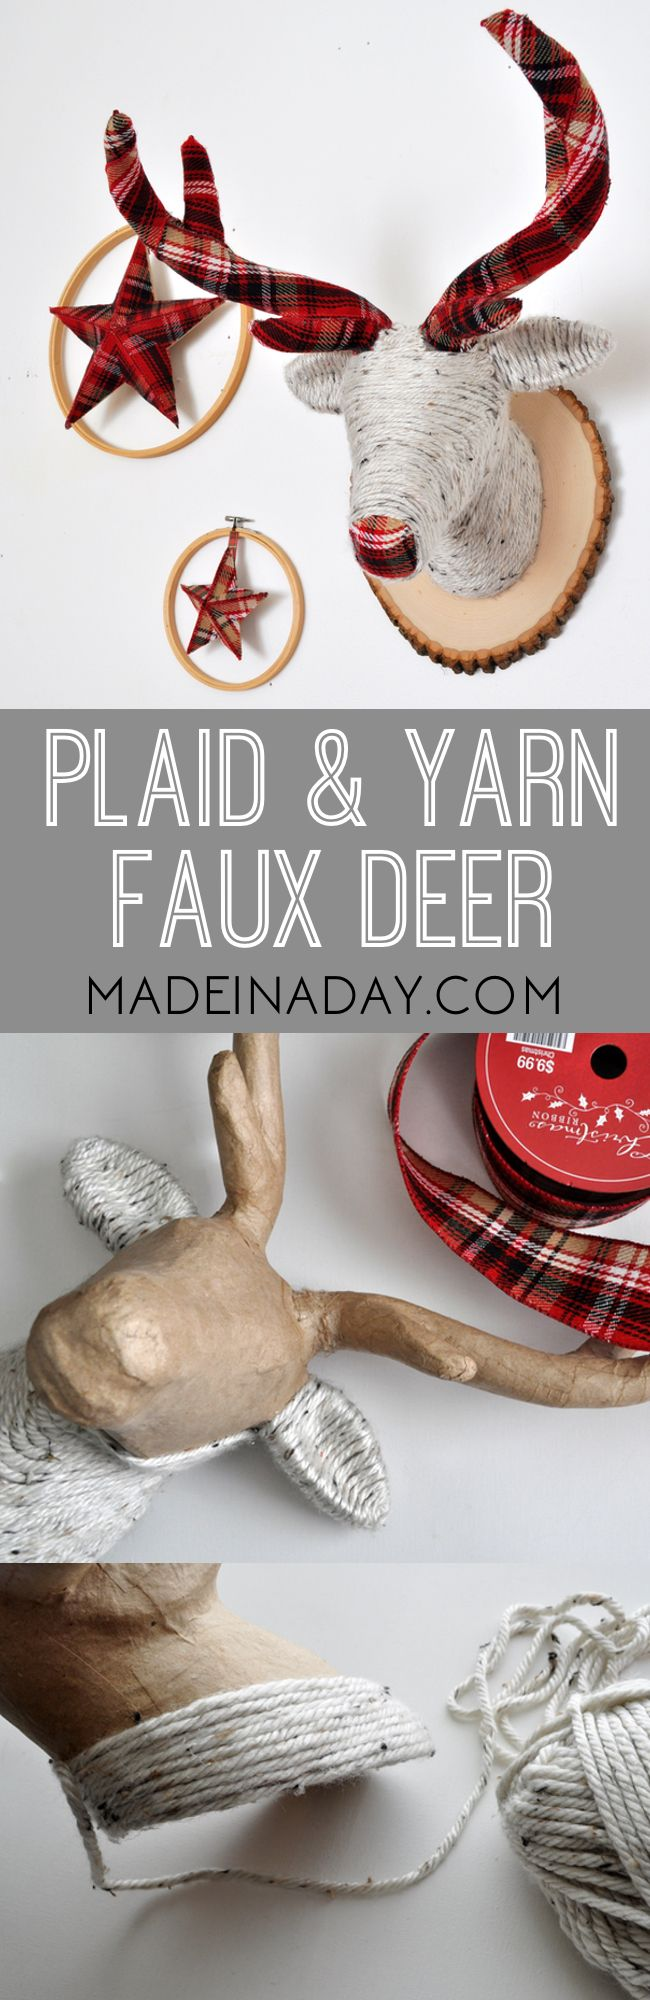 17 best ideas about faux deer head on pinterest faux for Fake deer antlers for crafts